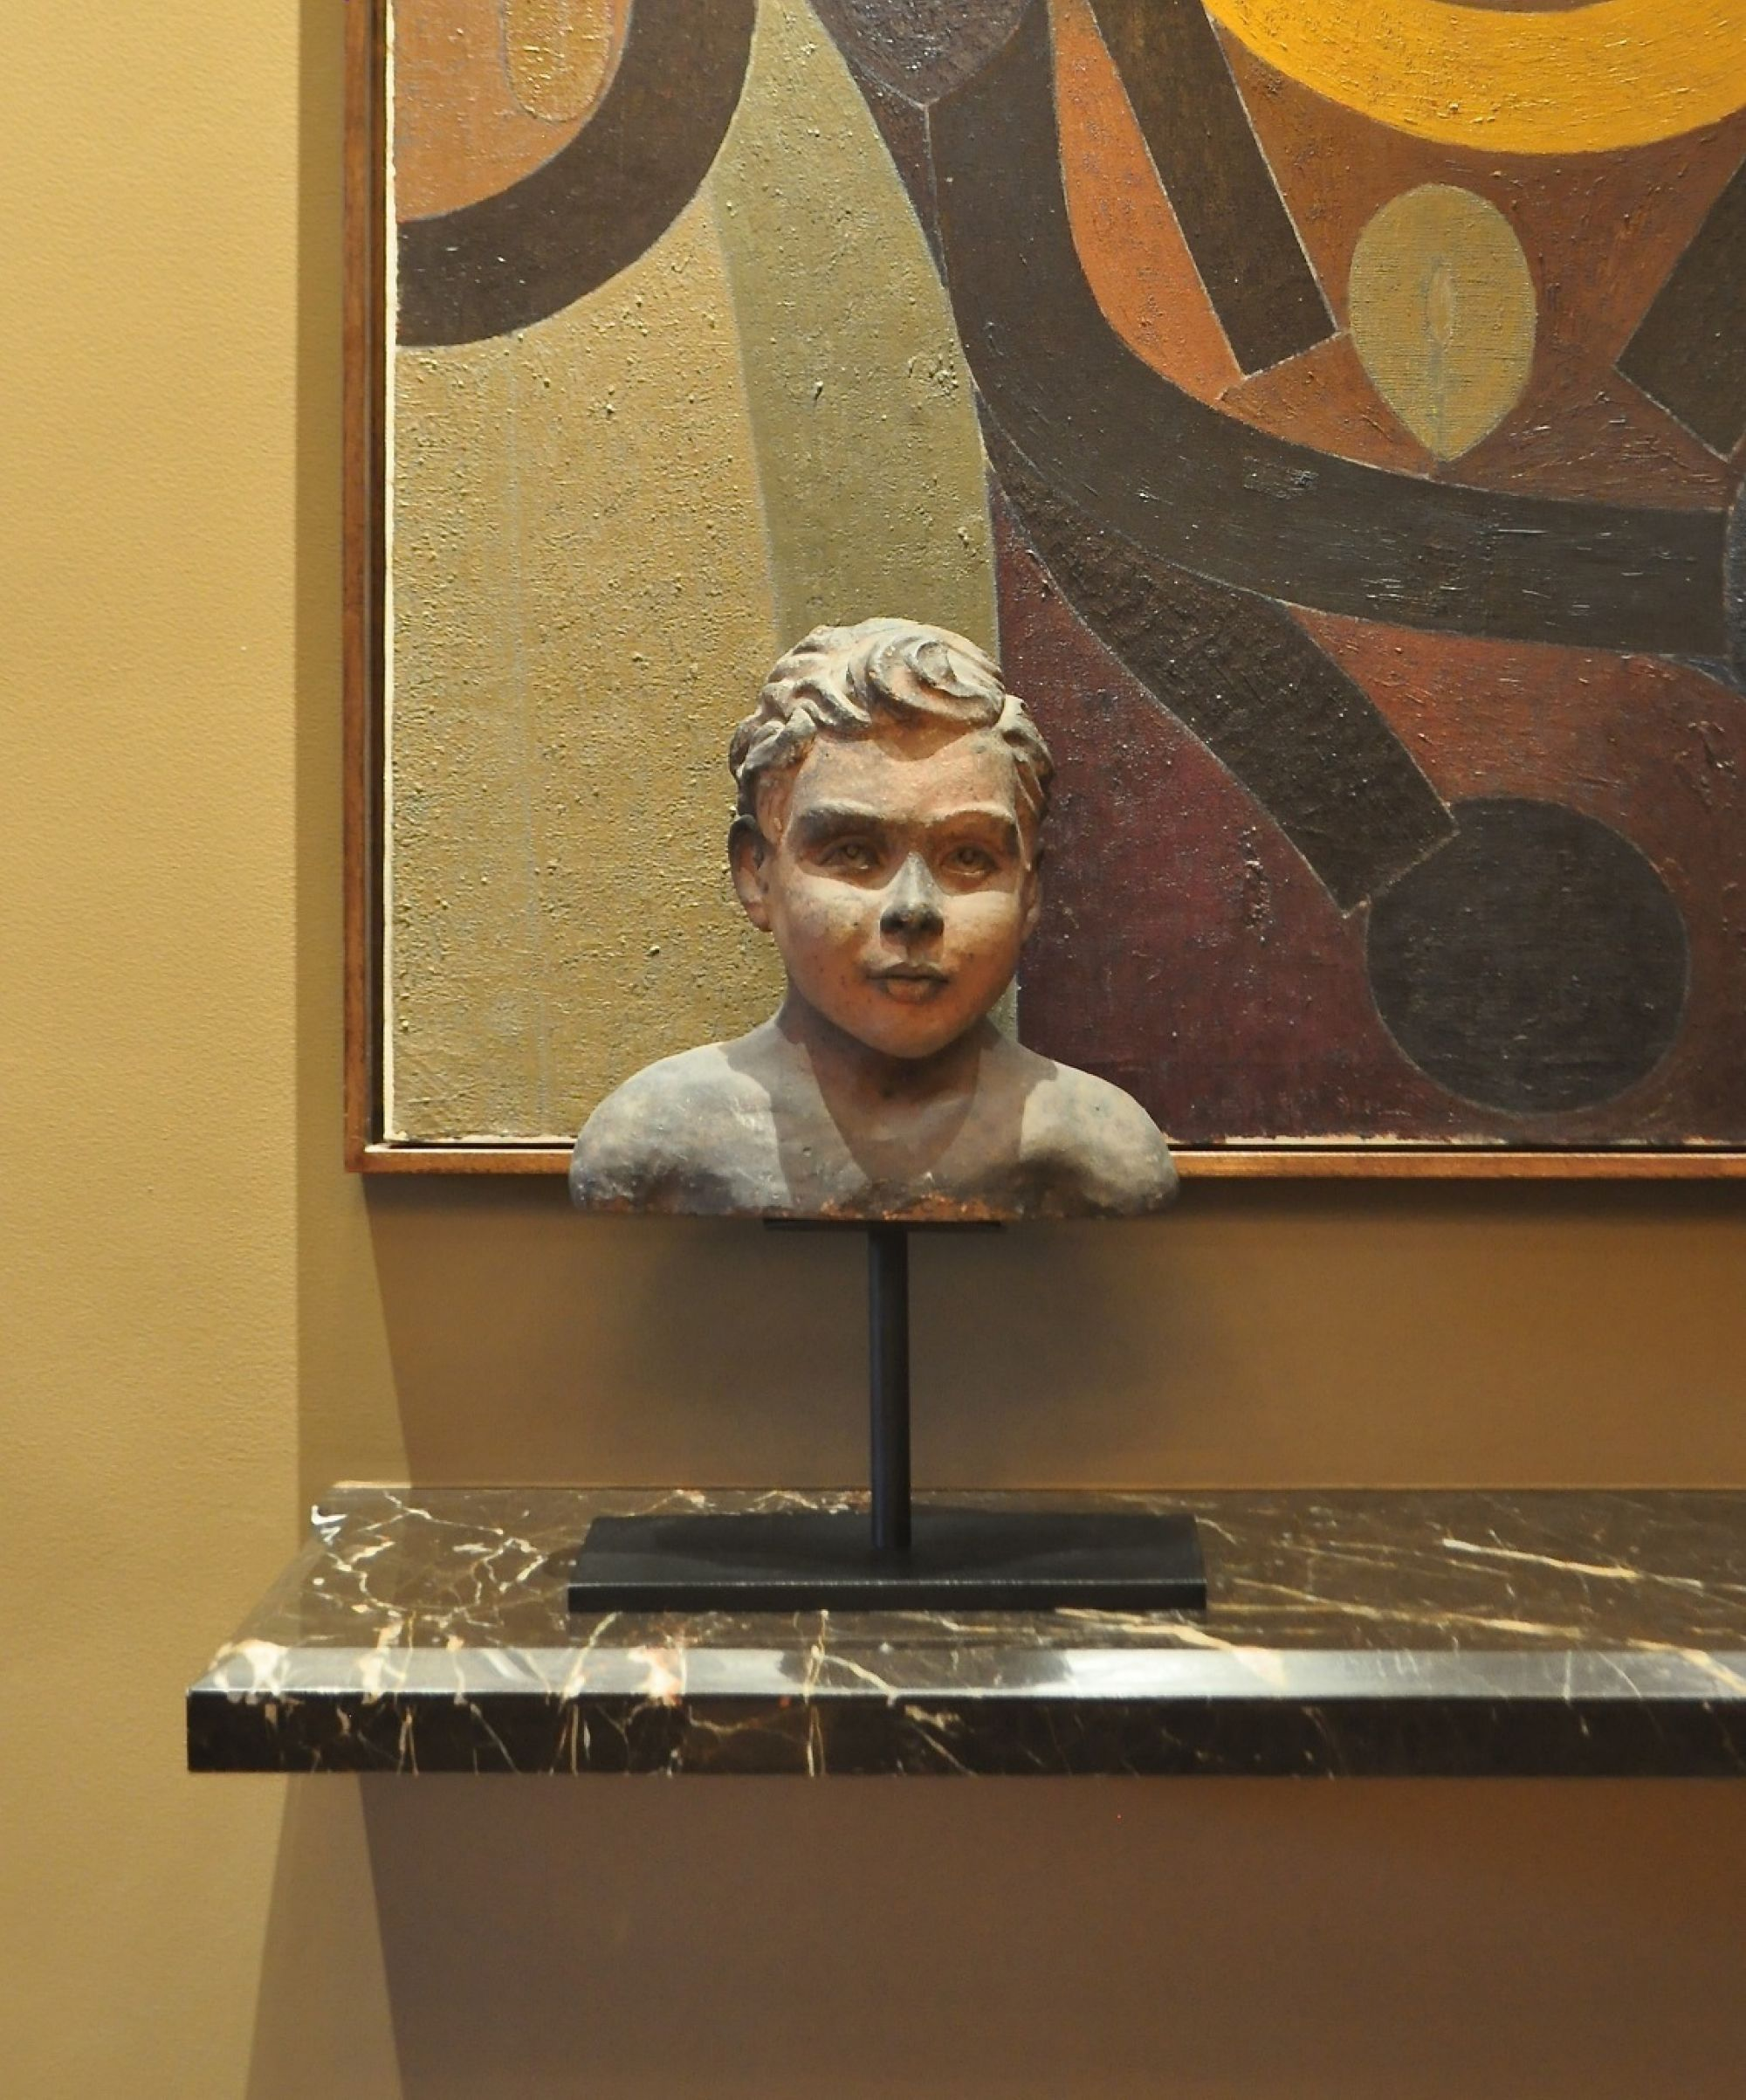 The terra cotta bust came beautifully mounted on a black steel stand.